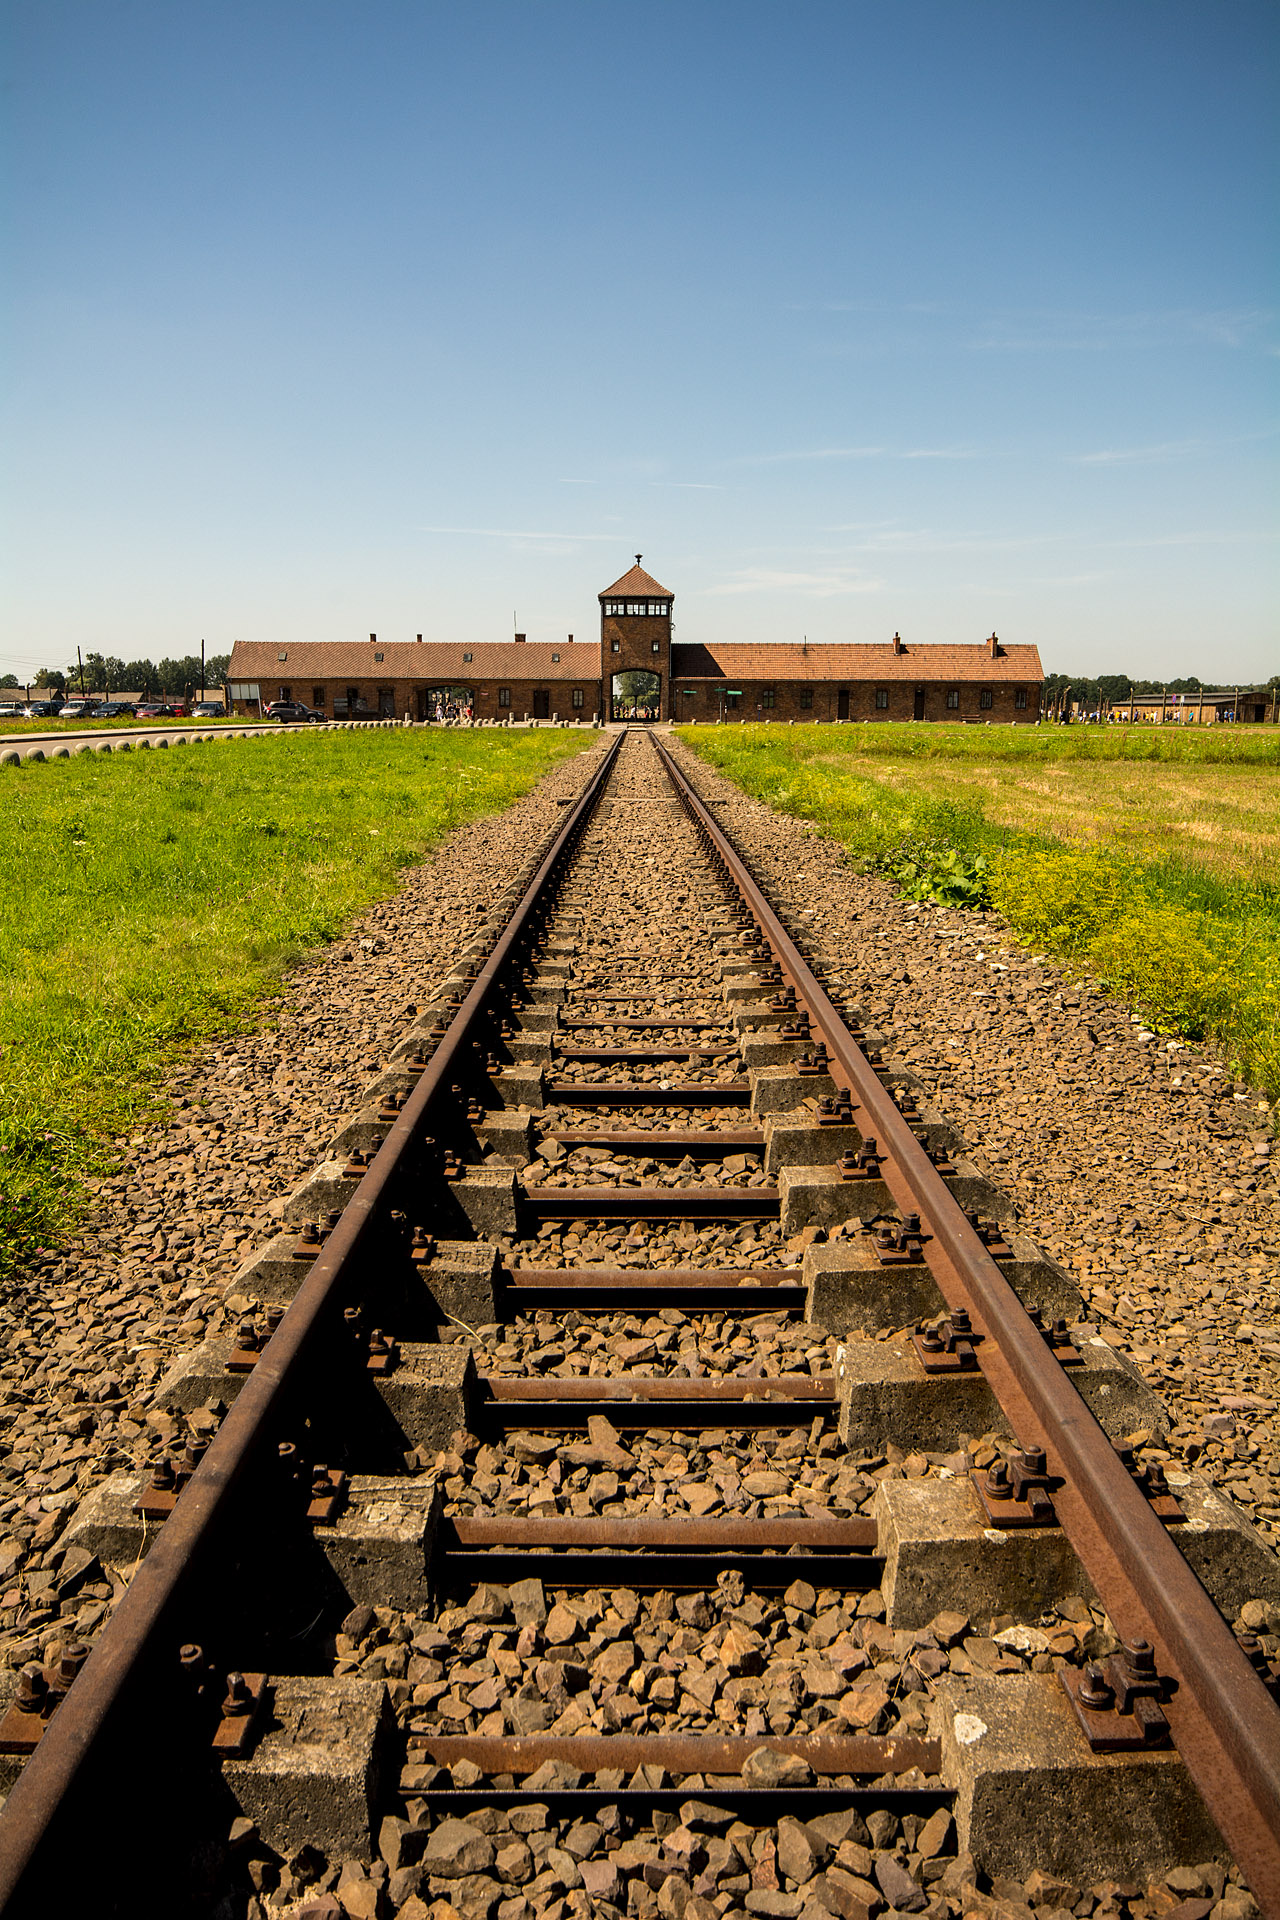 'Gate of Death' (Auschwitz II - Birkenau)